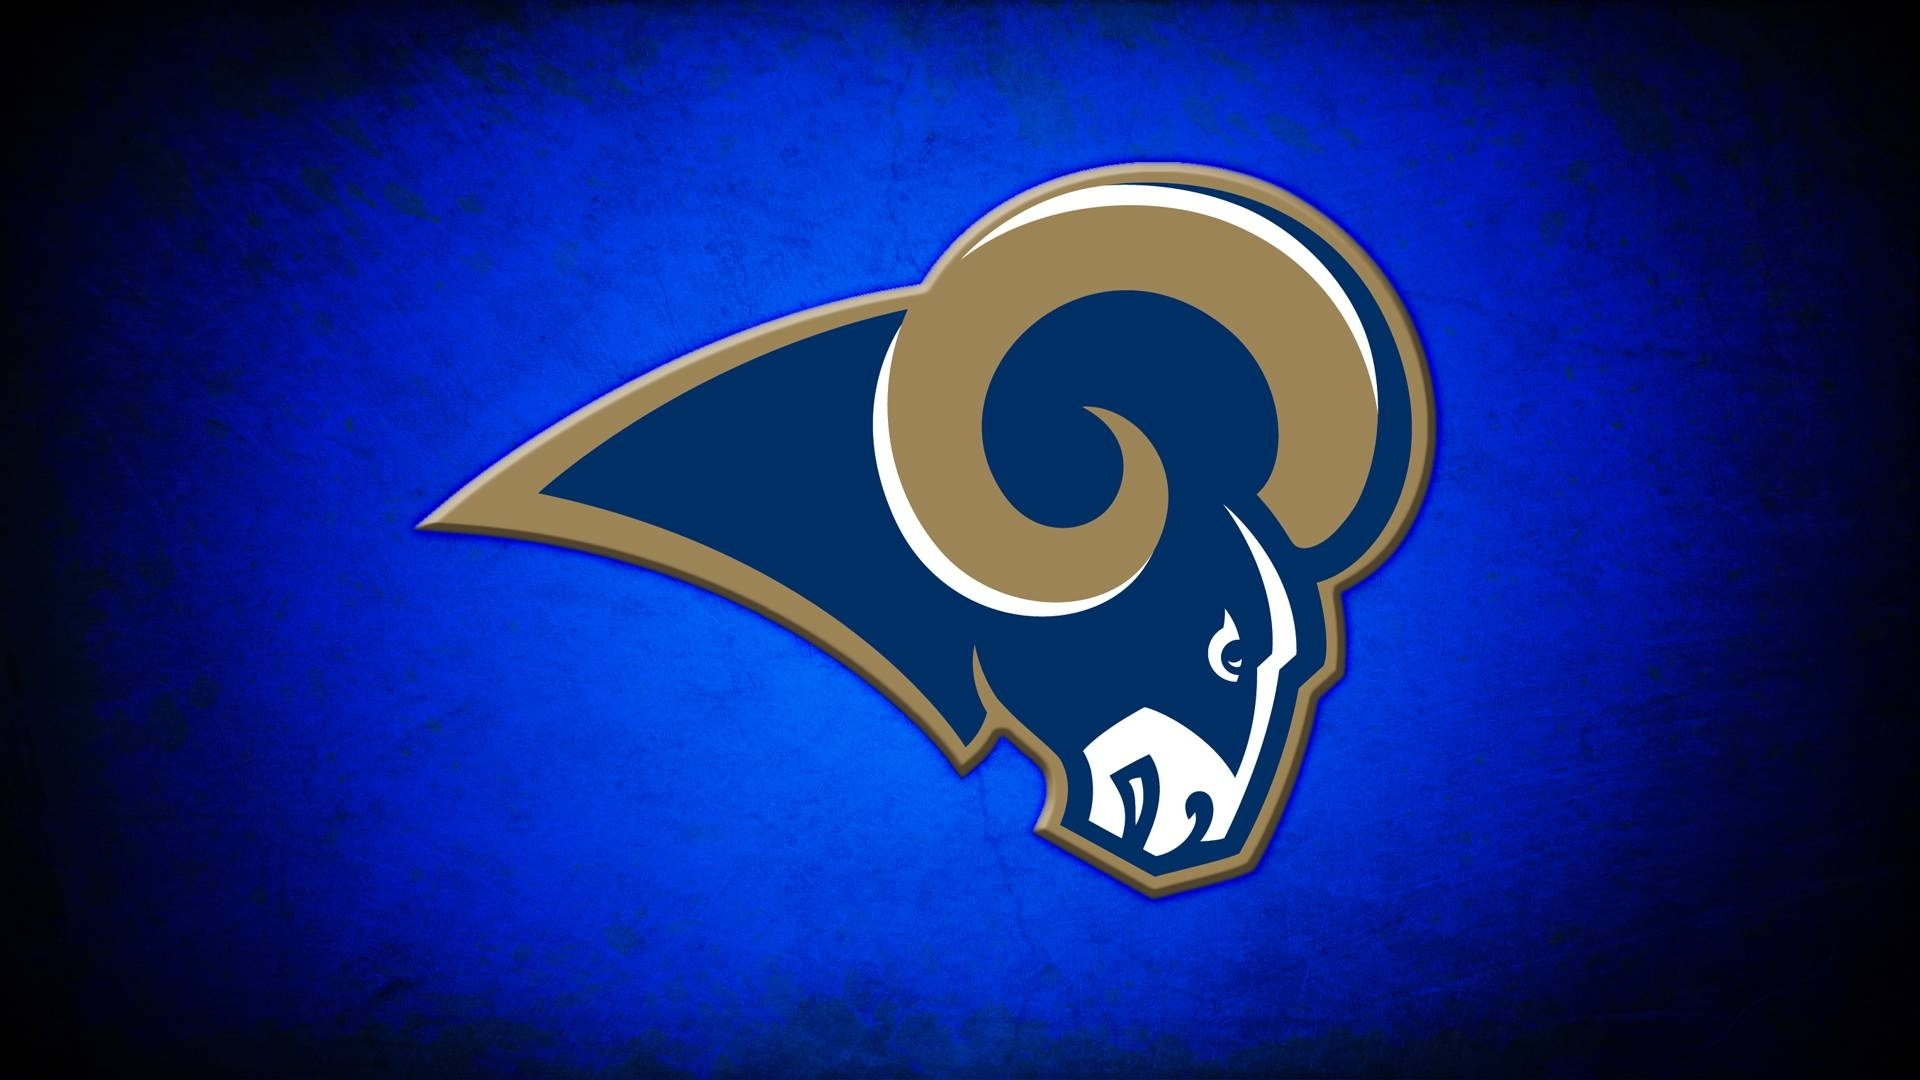 st louis rams wallpapers - wallpaper cave